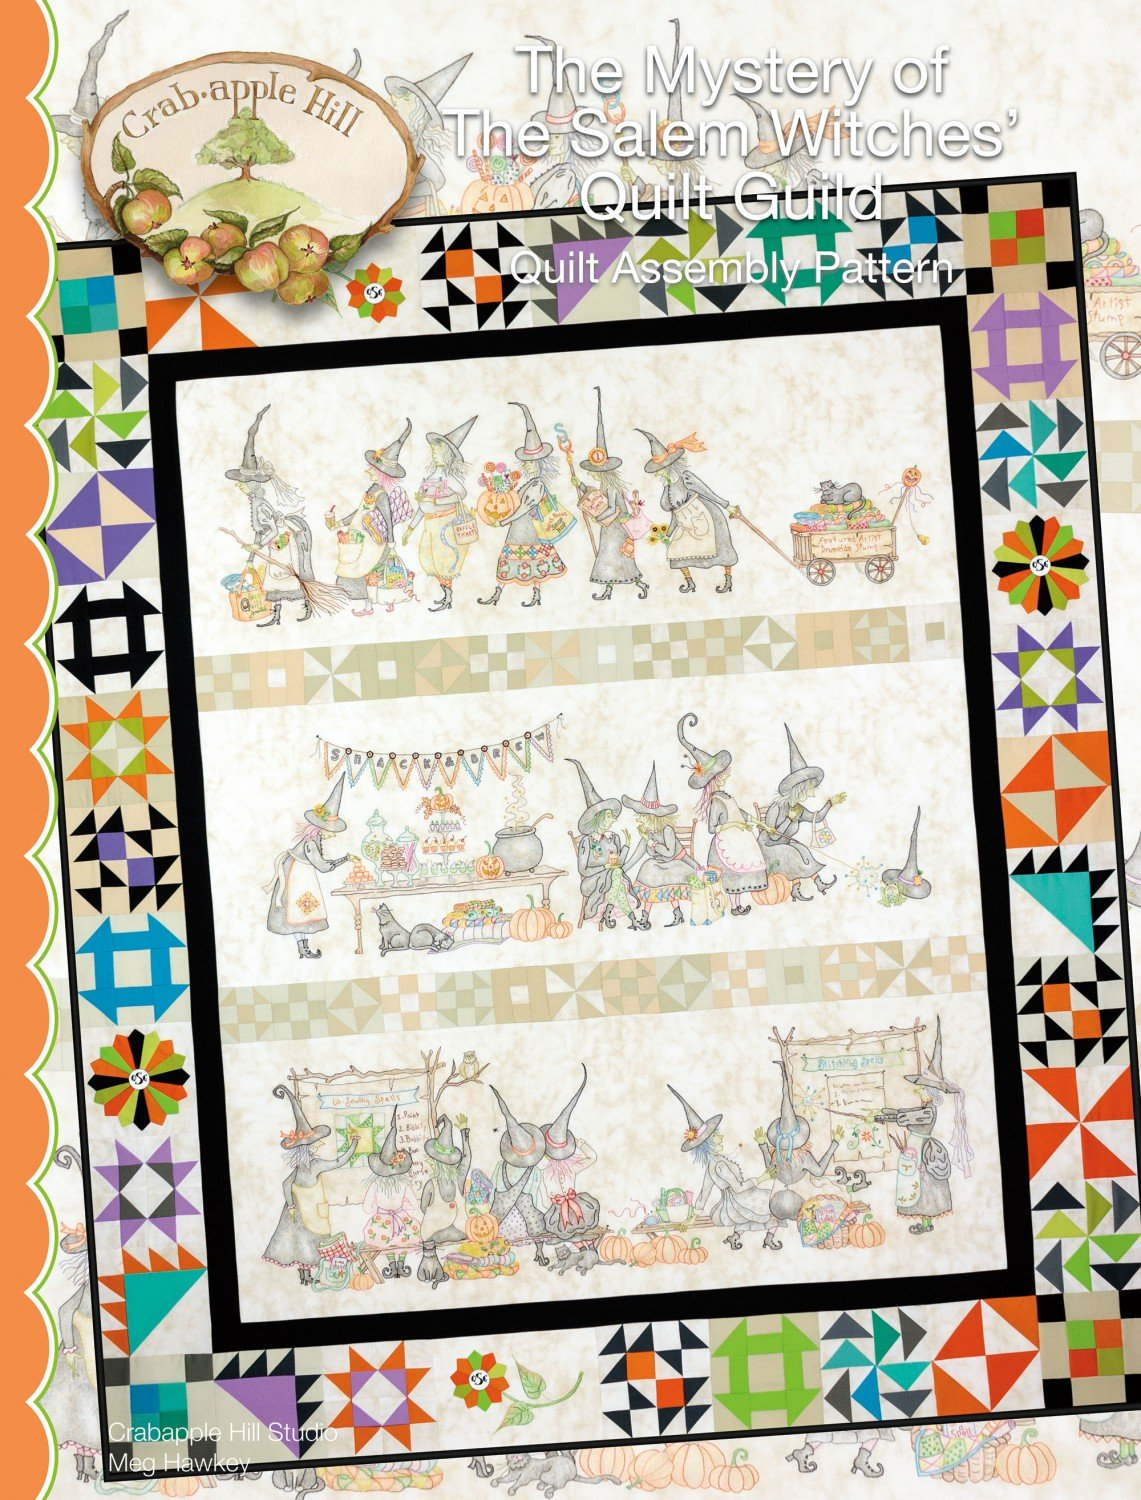 The Mystery of The Salem Witches' Quilt Guild Crab-apple Hill Studio